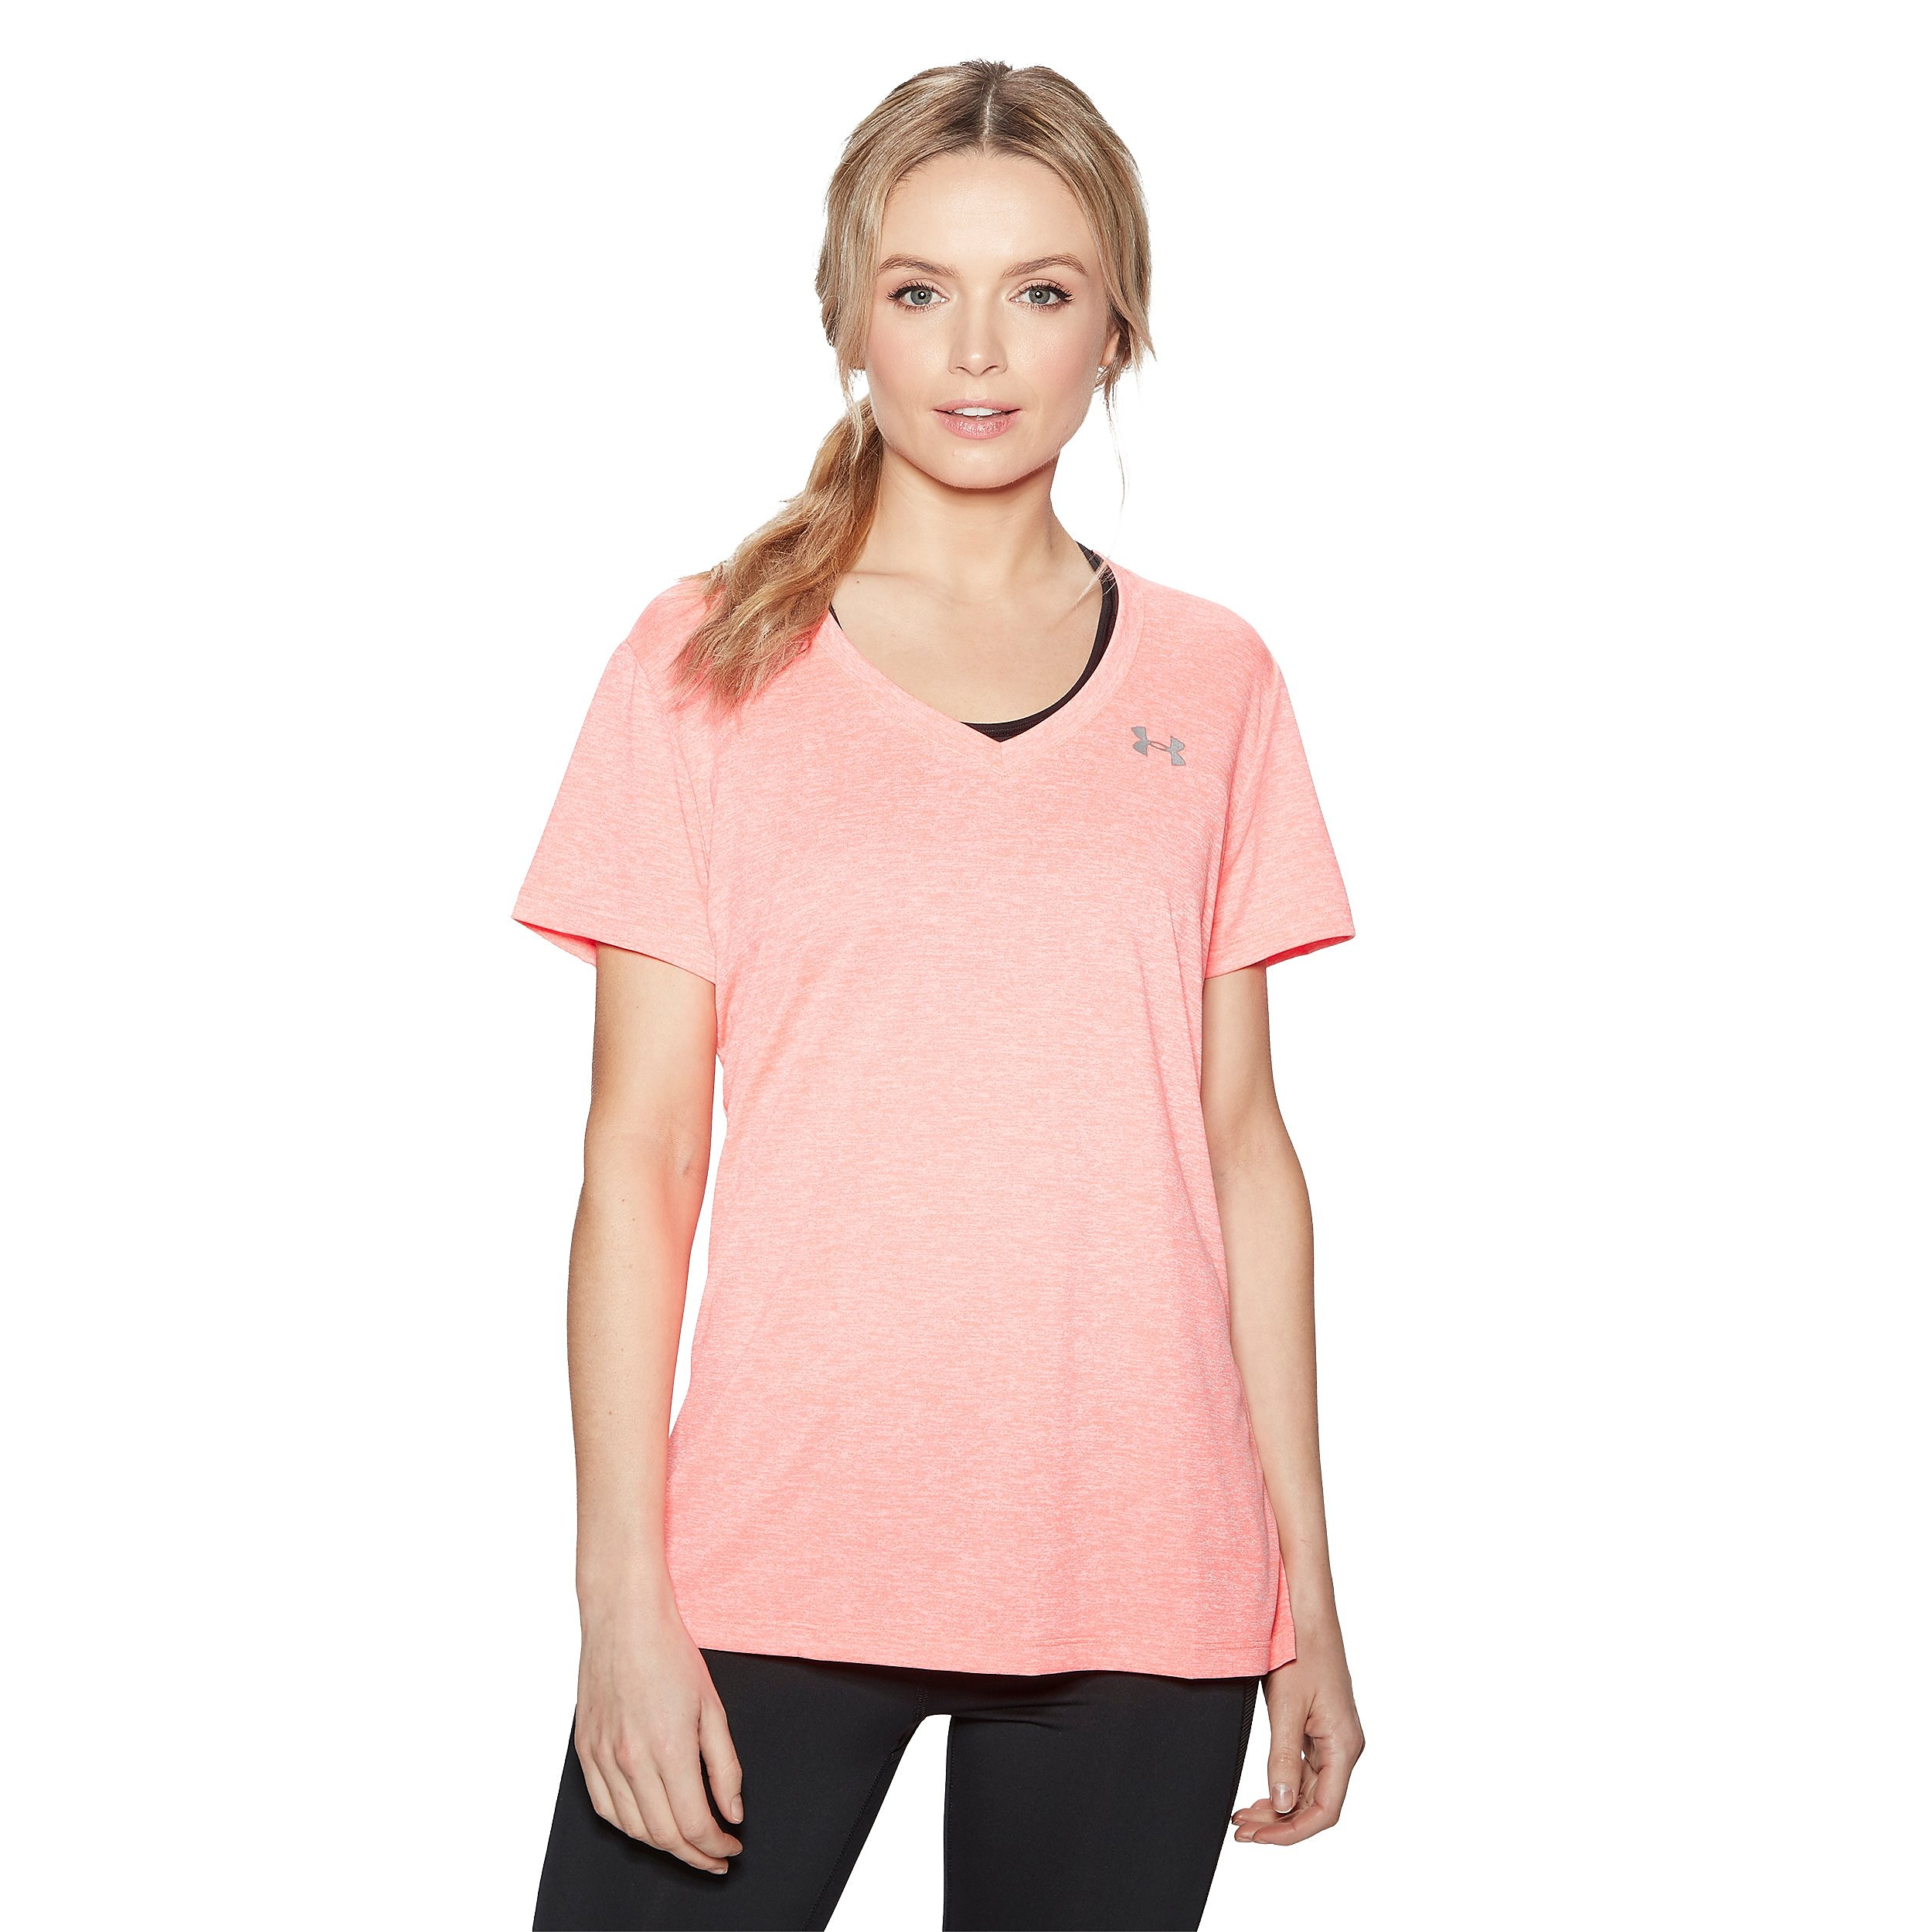 Under Armour Tech Twist Women's V-Neck T-Shirt